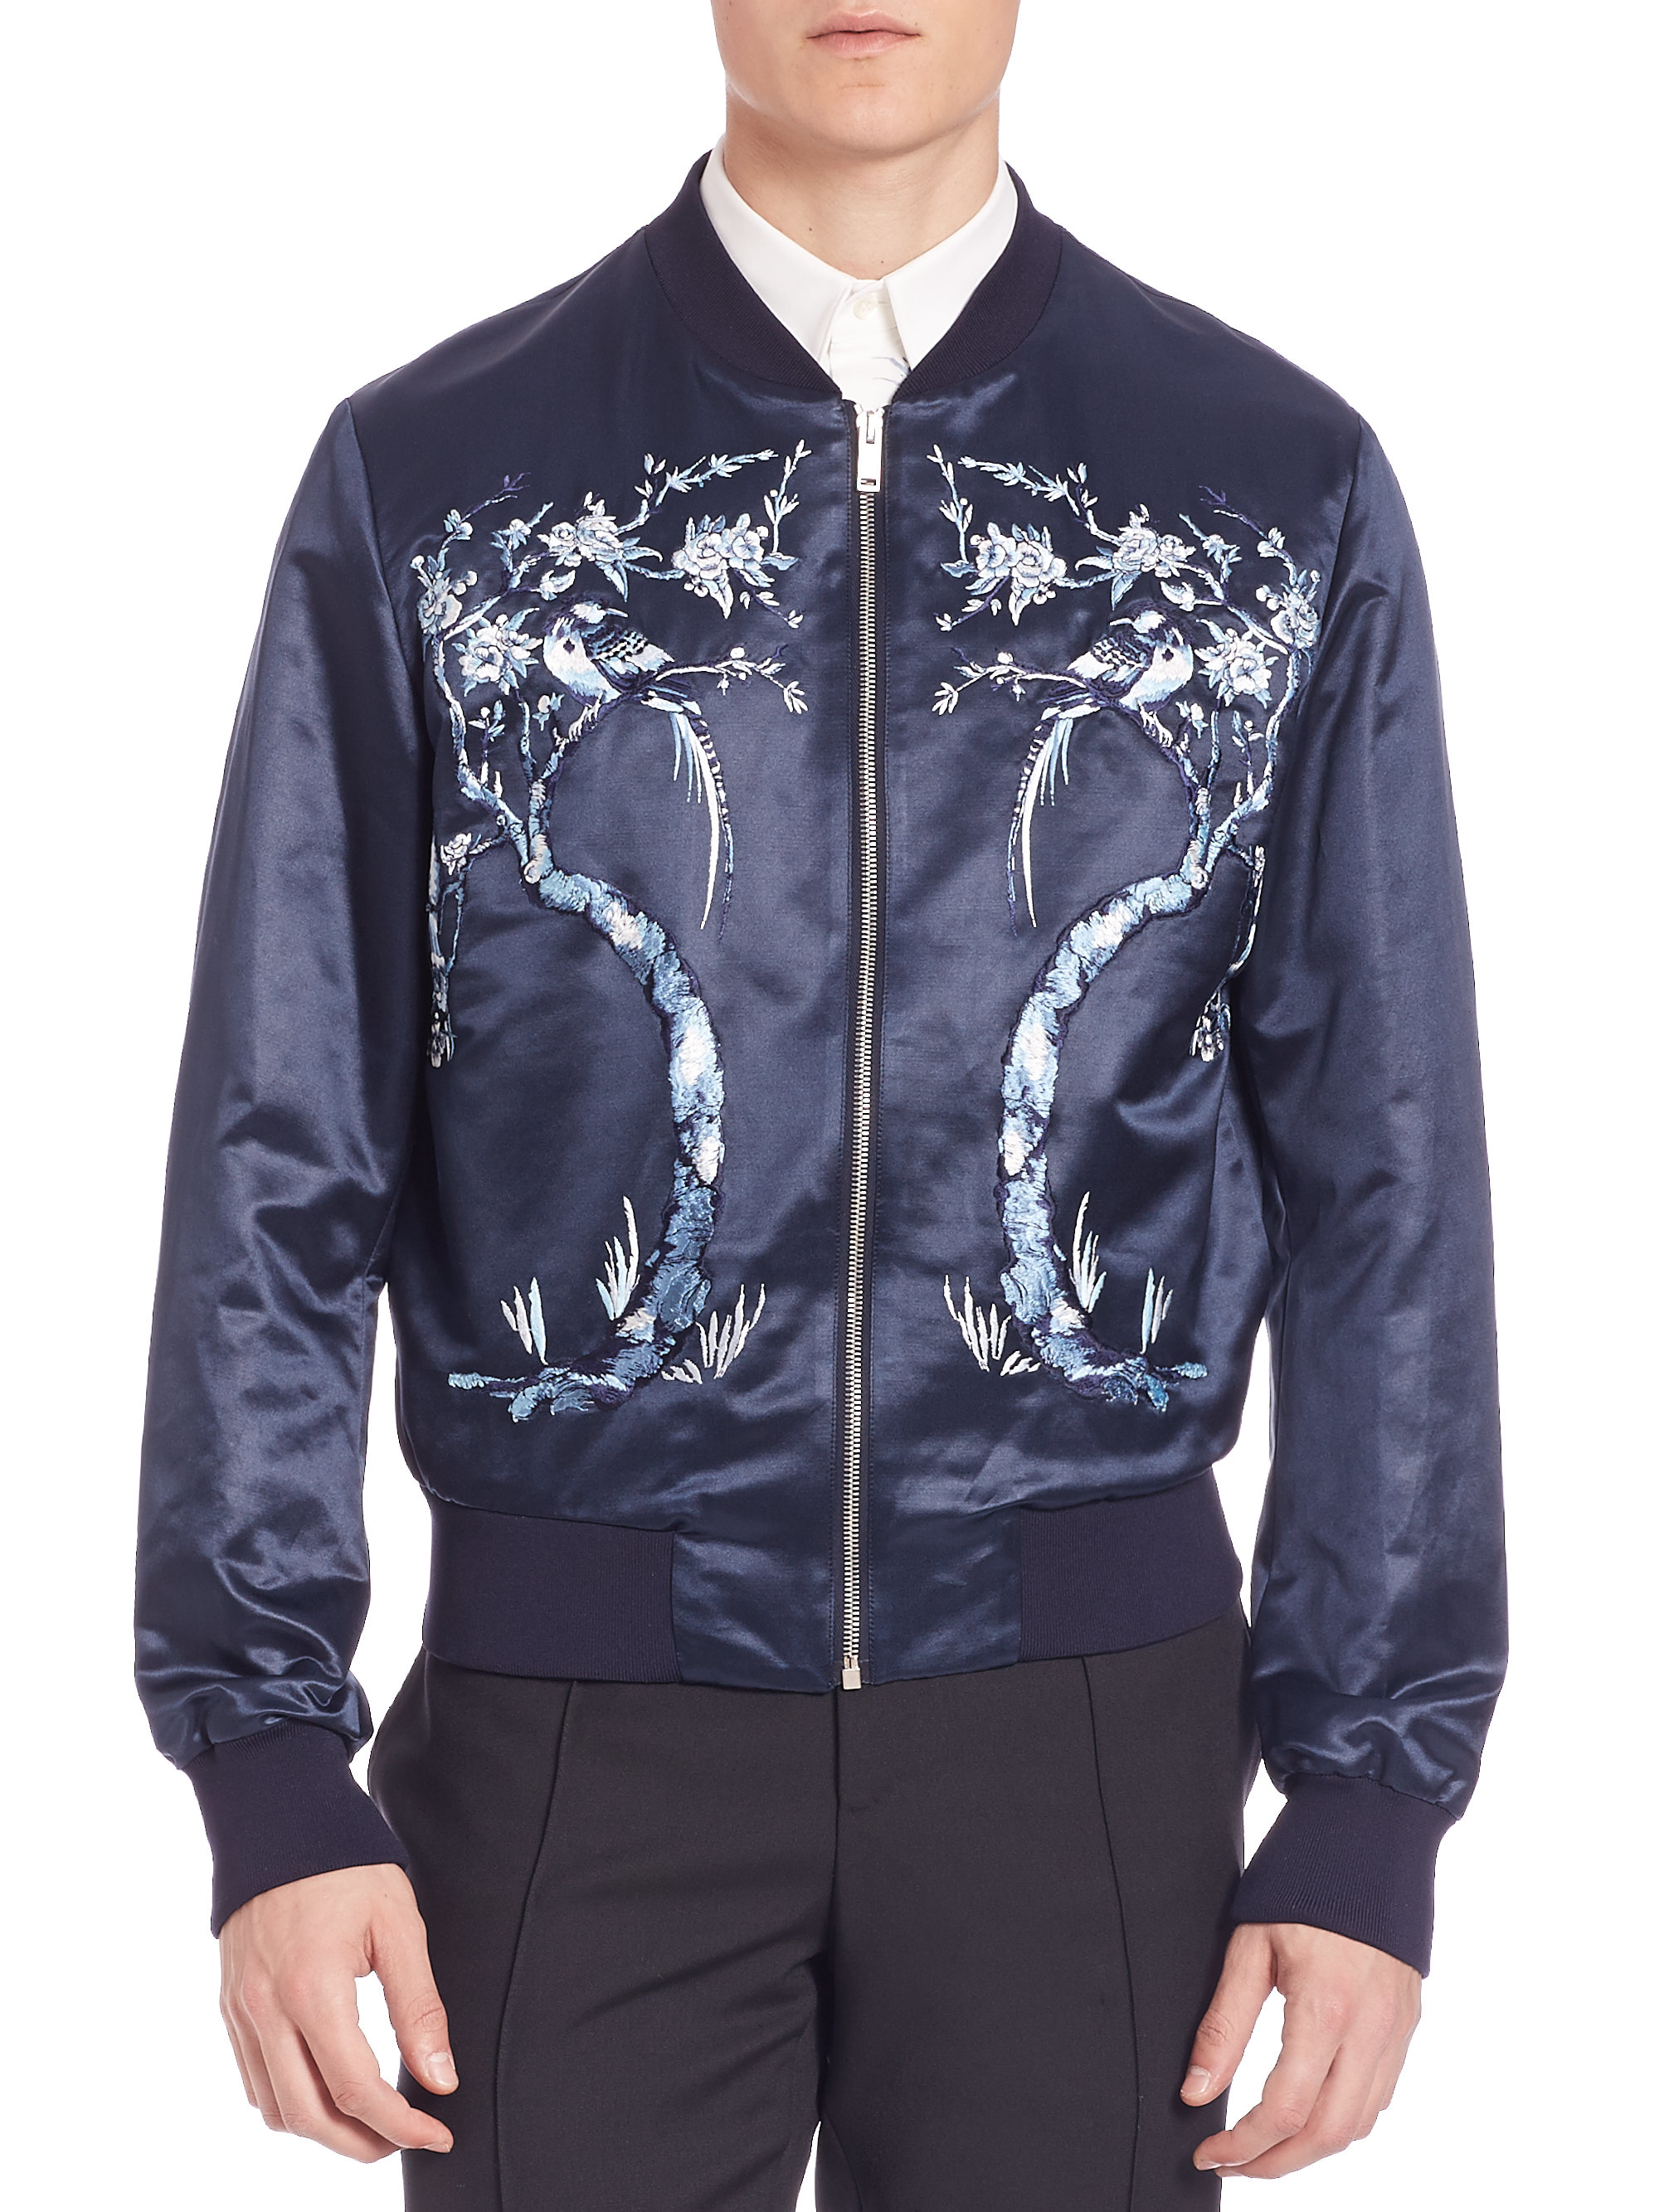 96abe91fdcf Alexander McQueen Embroidered Silk Bomber Jacket in Blue for Men - Lyst